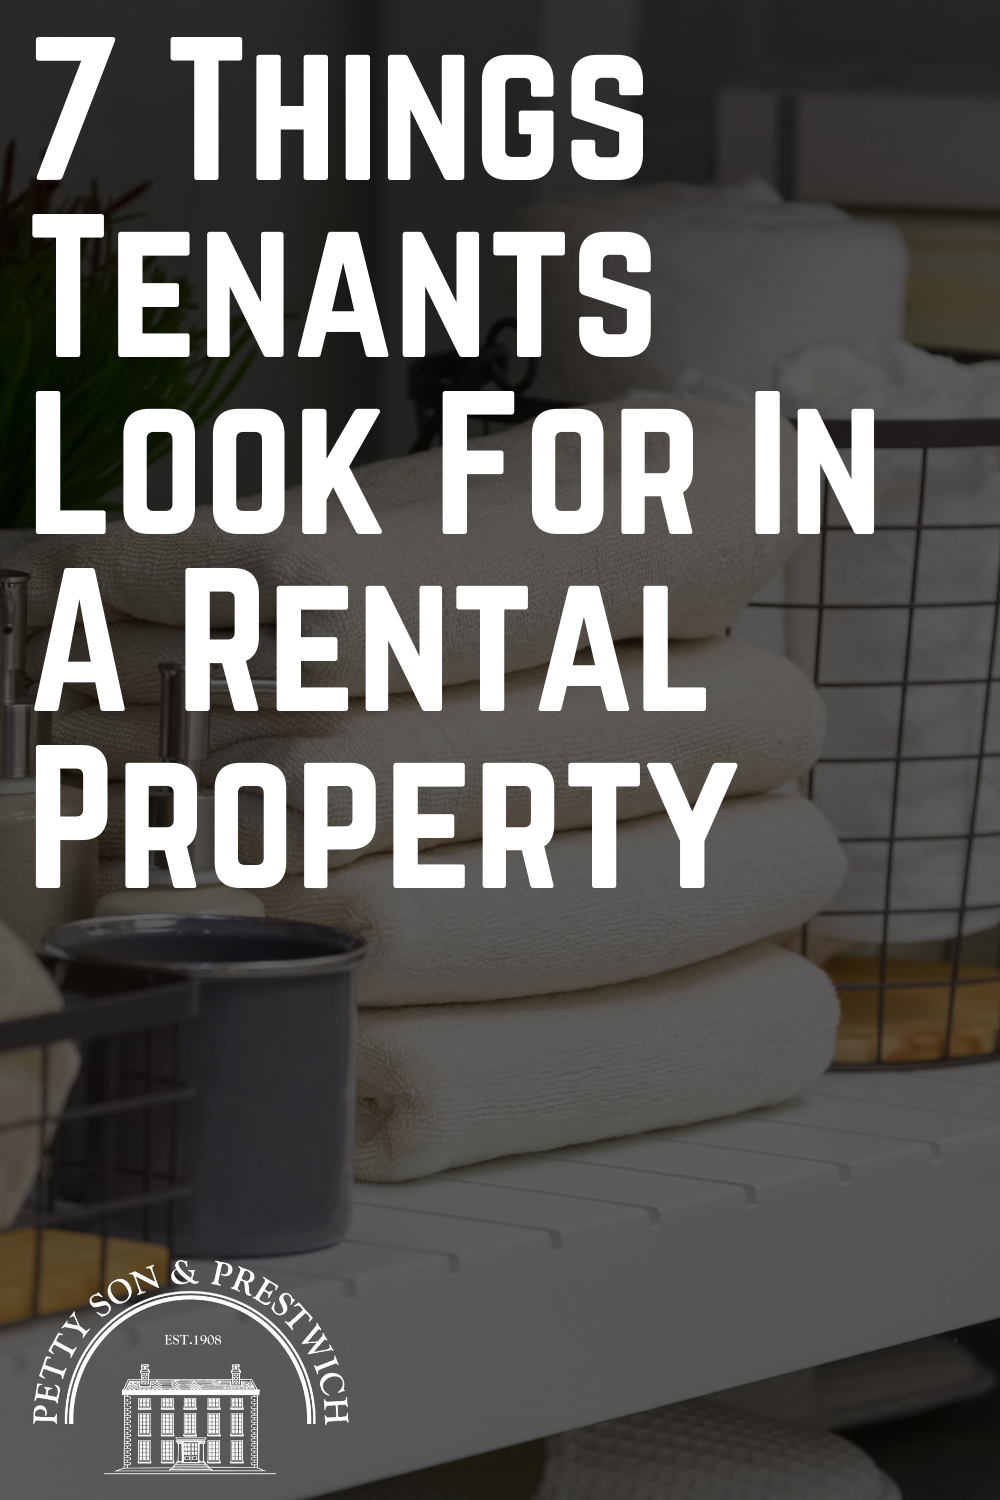 7 Things Tenants Look For In A Rental Property